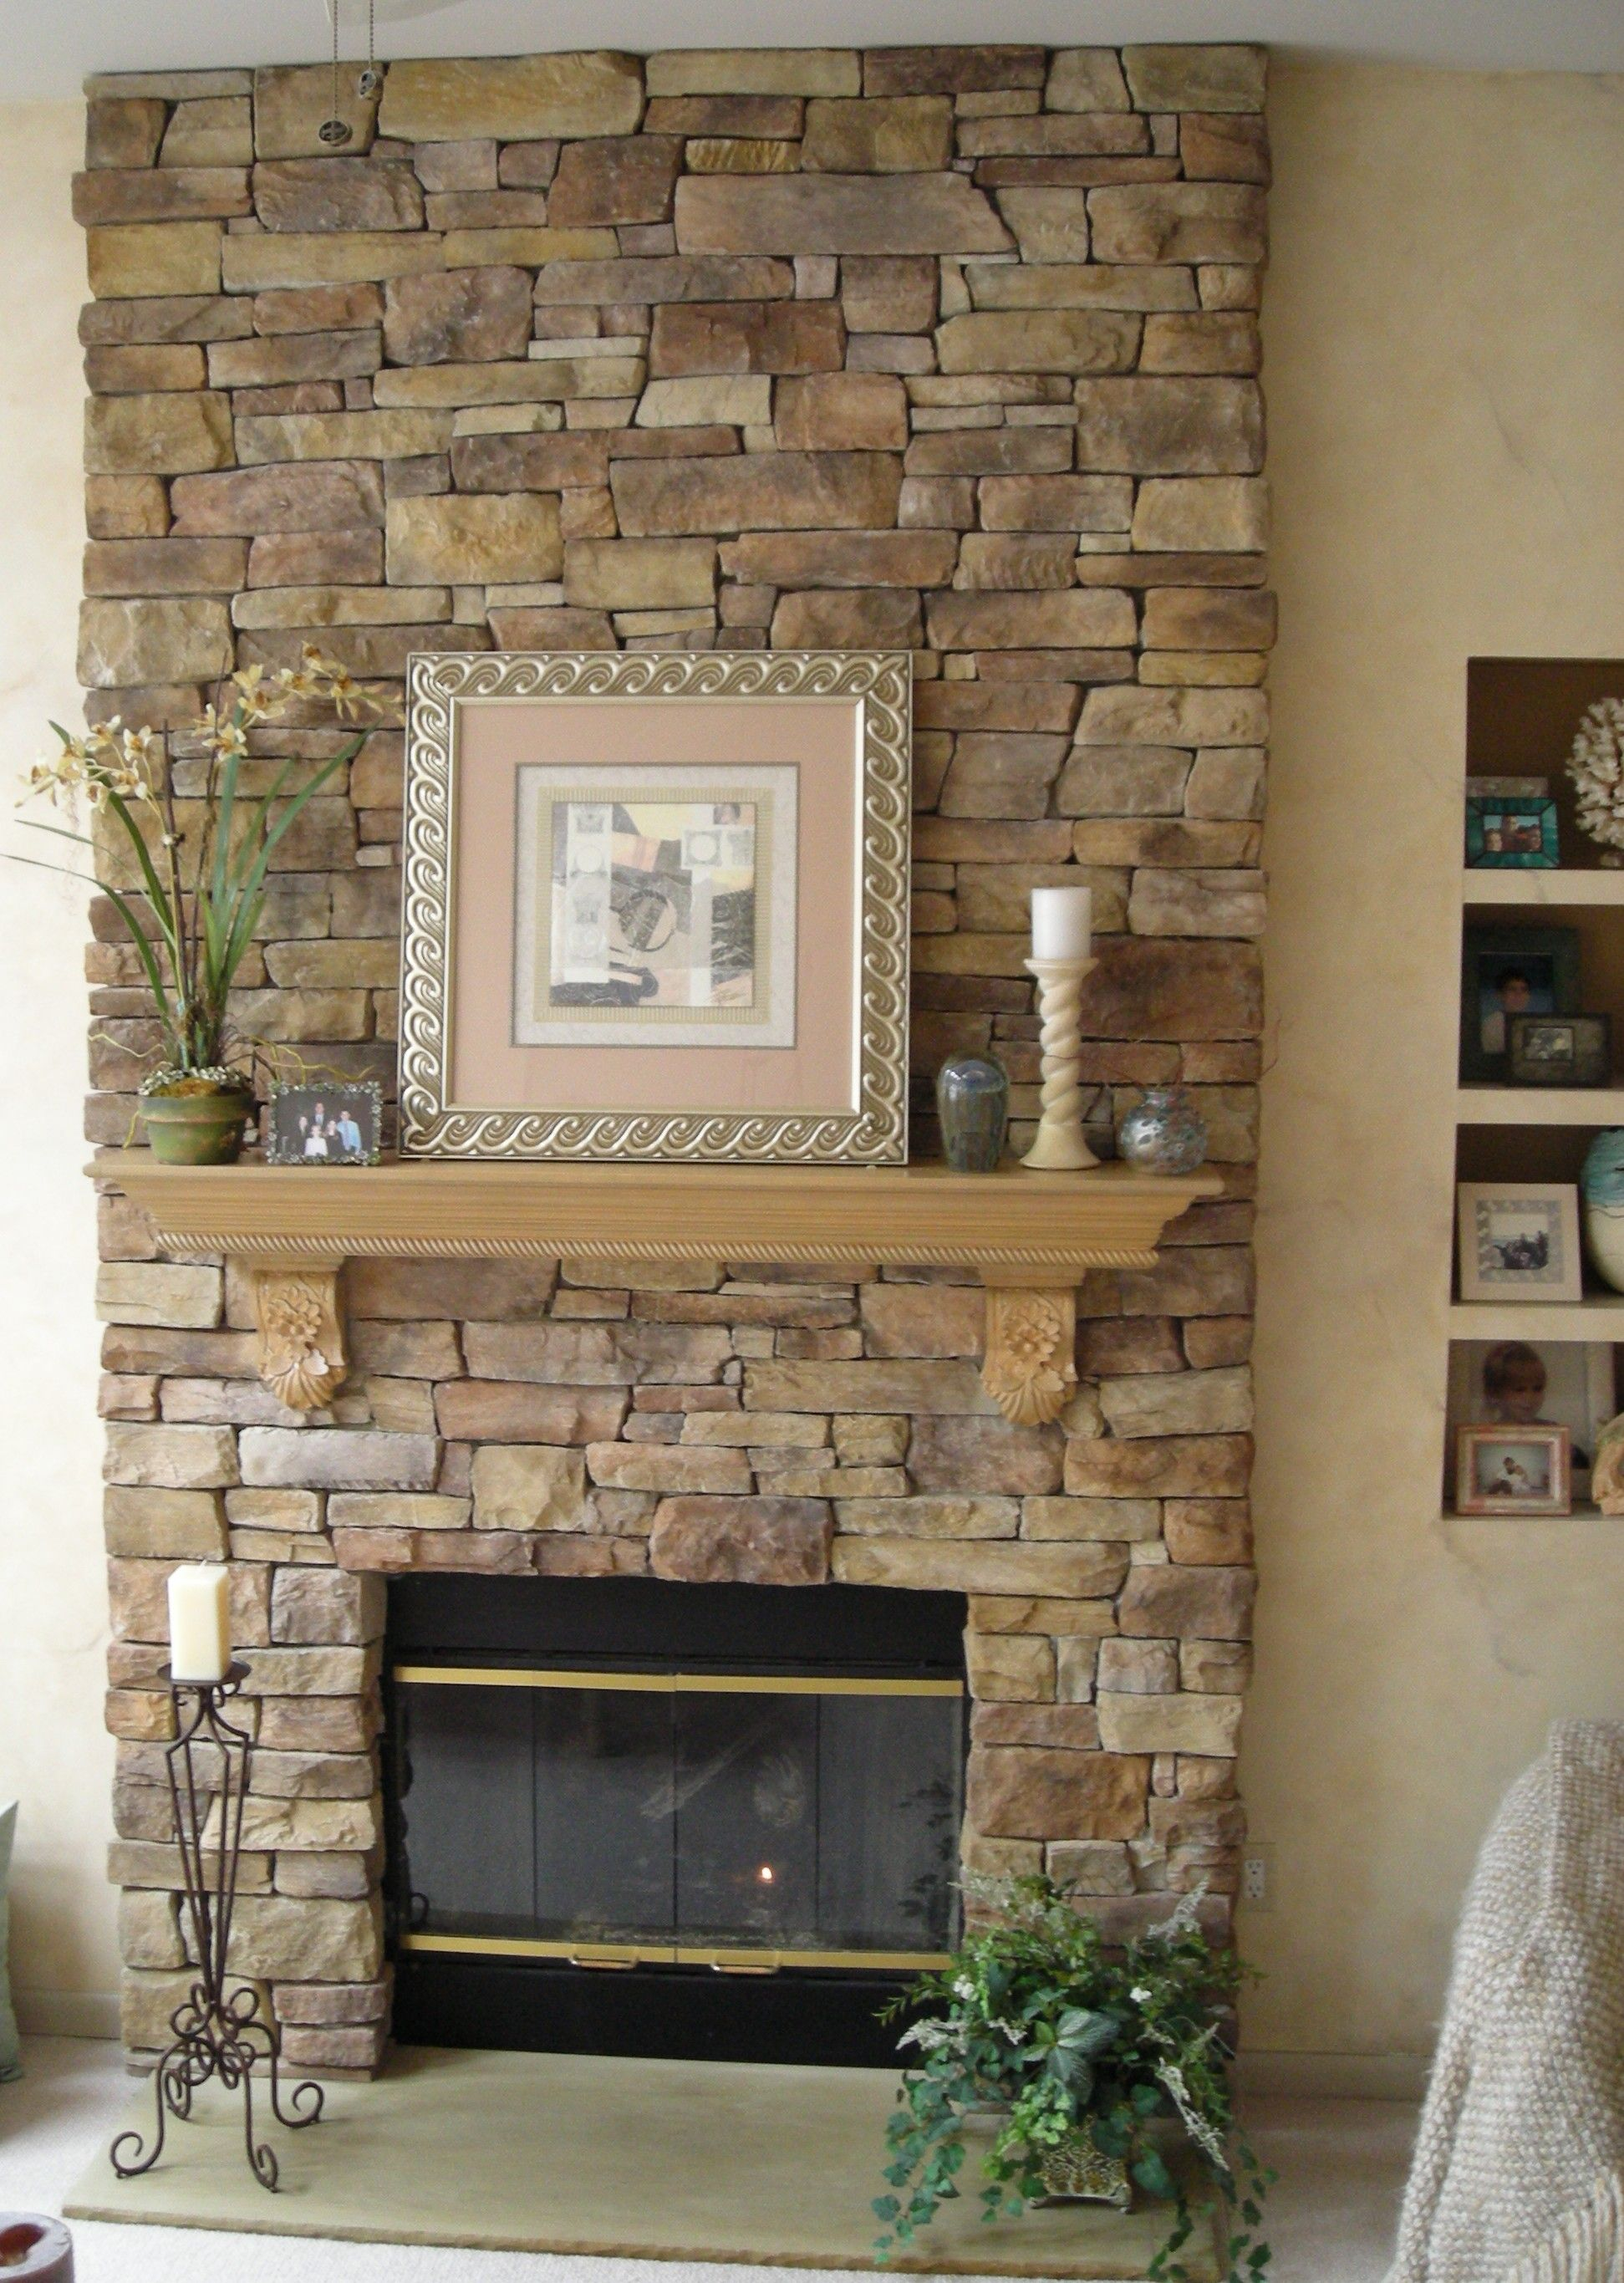 ideas home stone as architectural fireplace with fd decor pinterest beautiful cultured tuscan decorations outlet yoder decorati innovative veneer discount decorators blog wells masonry faux